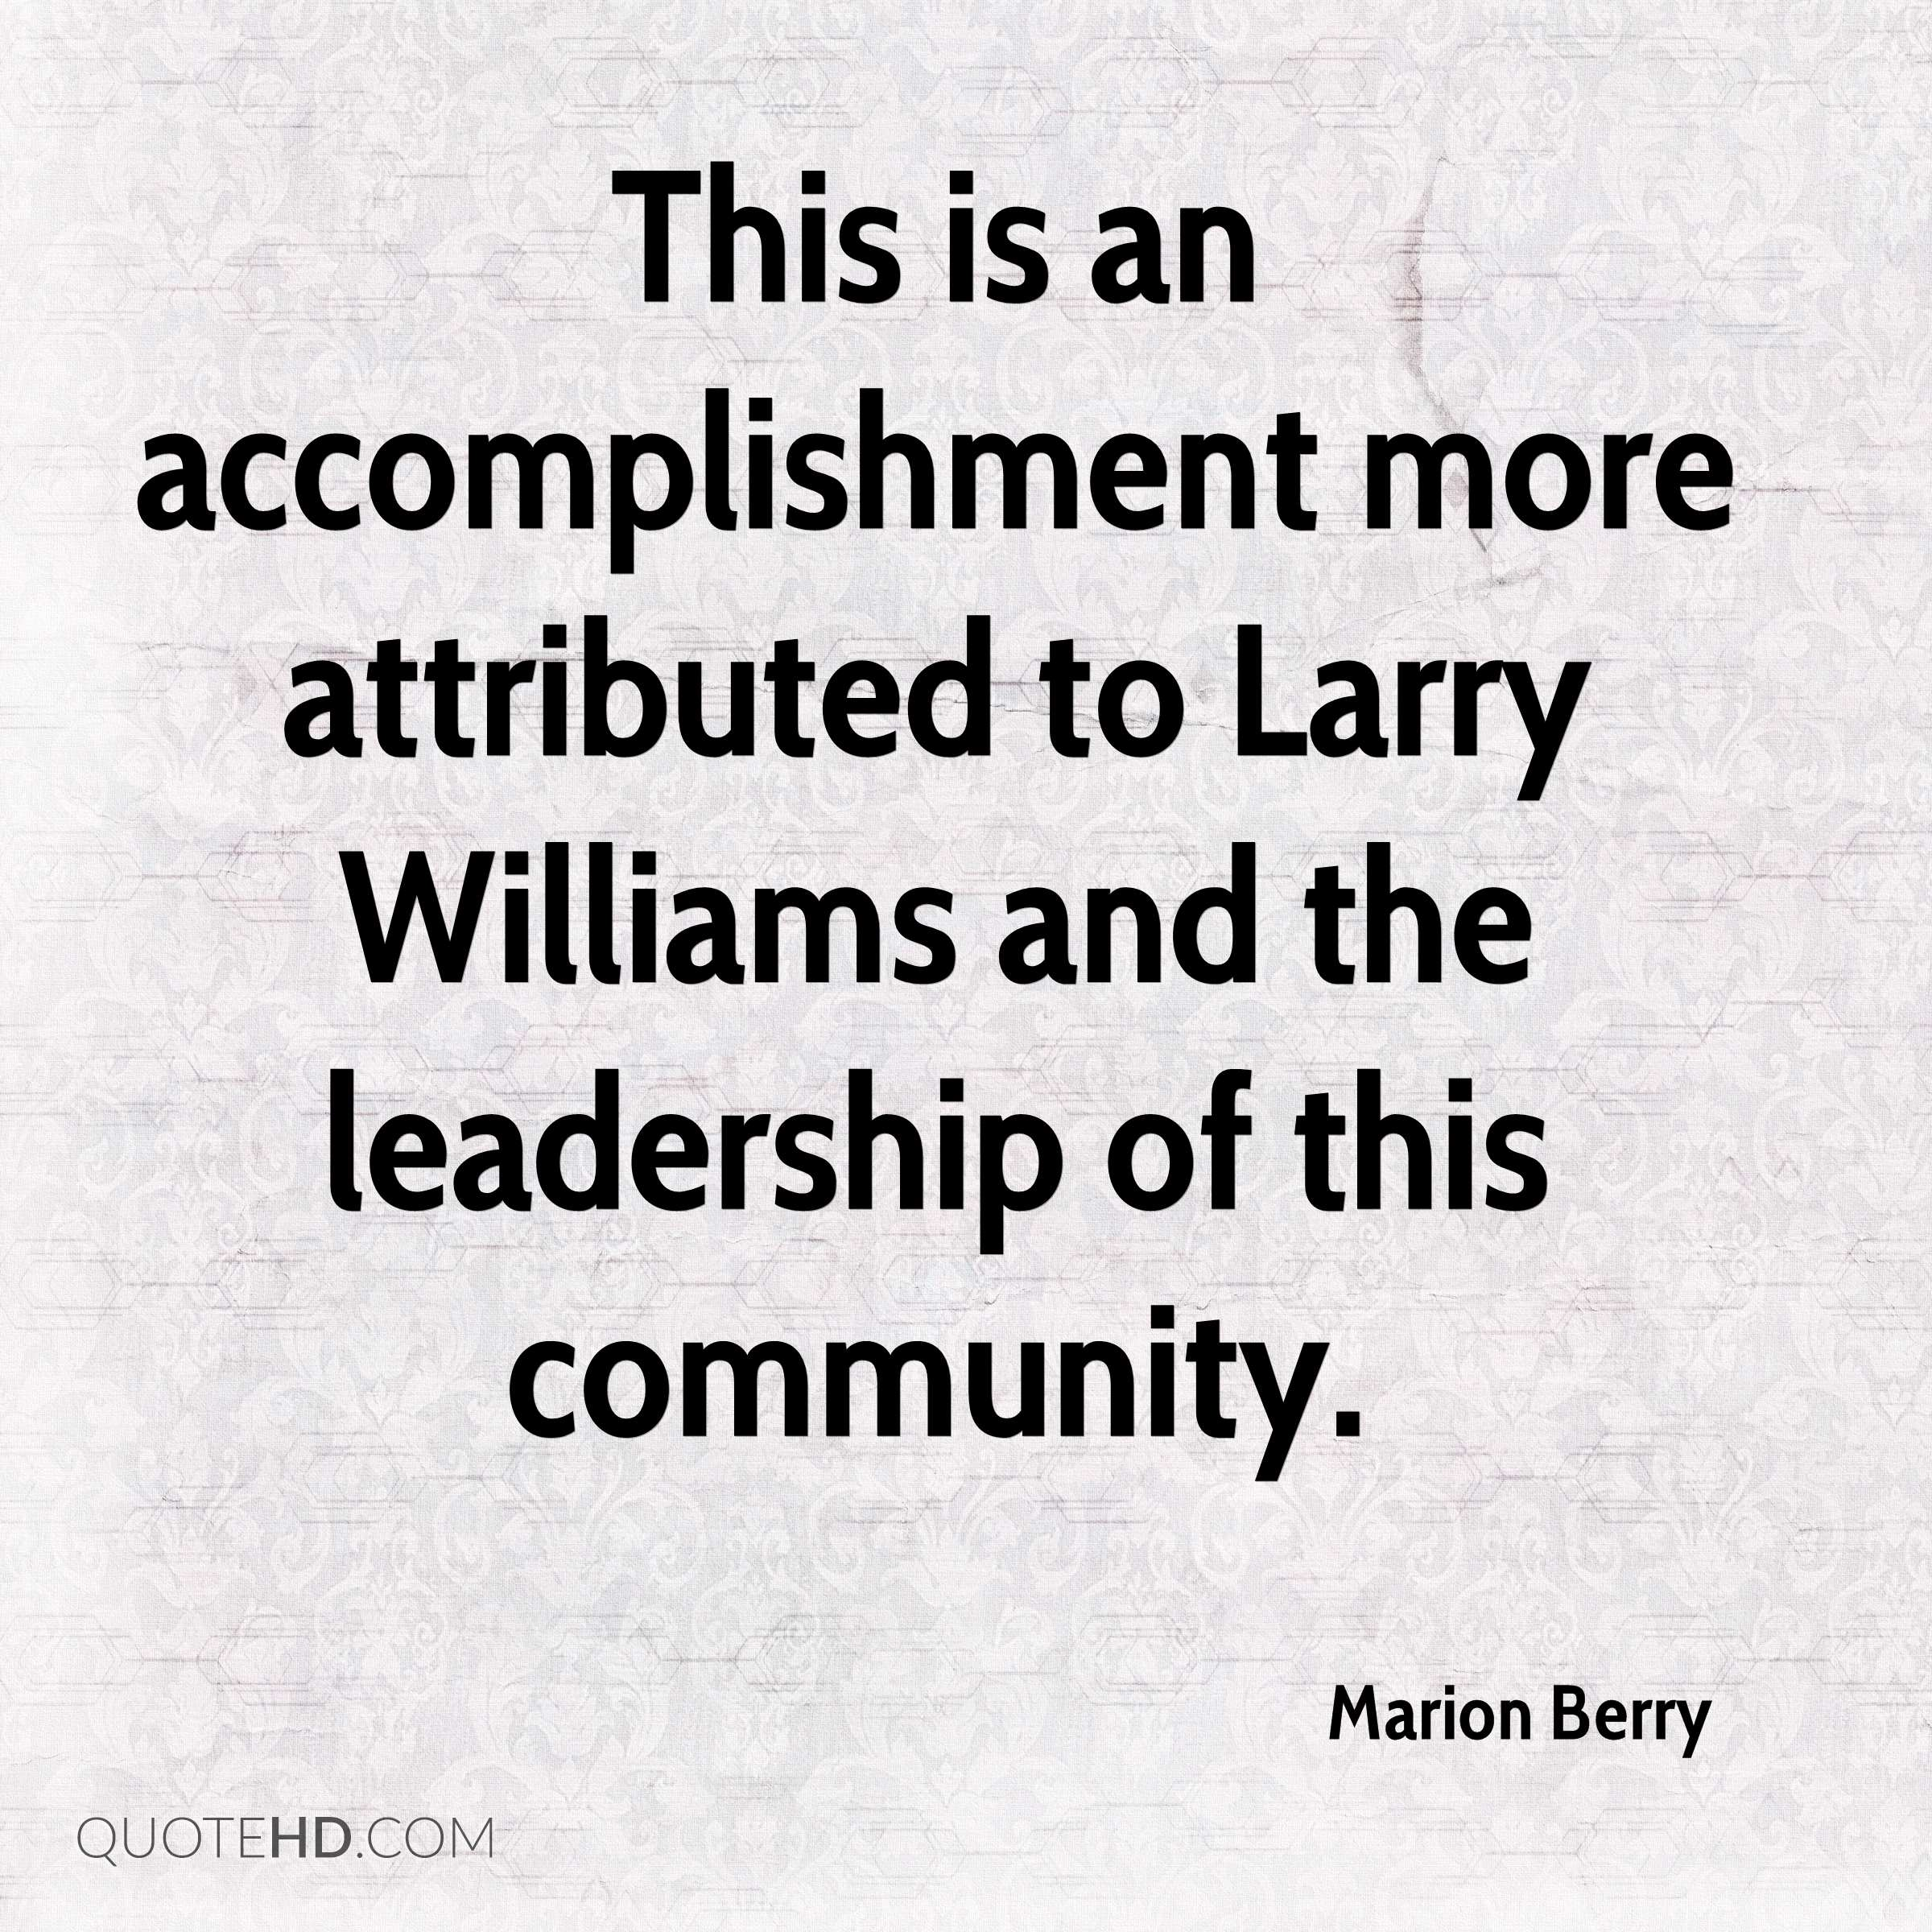 This is an accomplishment more attributed to Larry Williams and the leadership of this community.